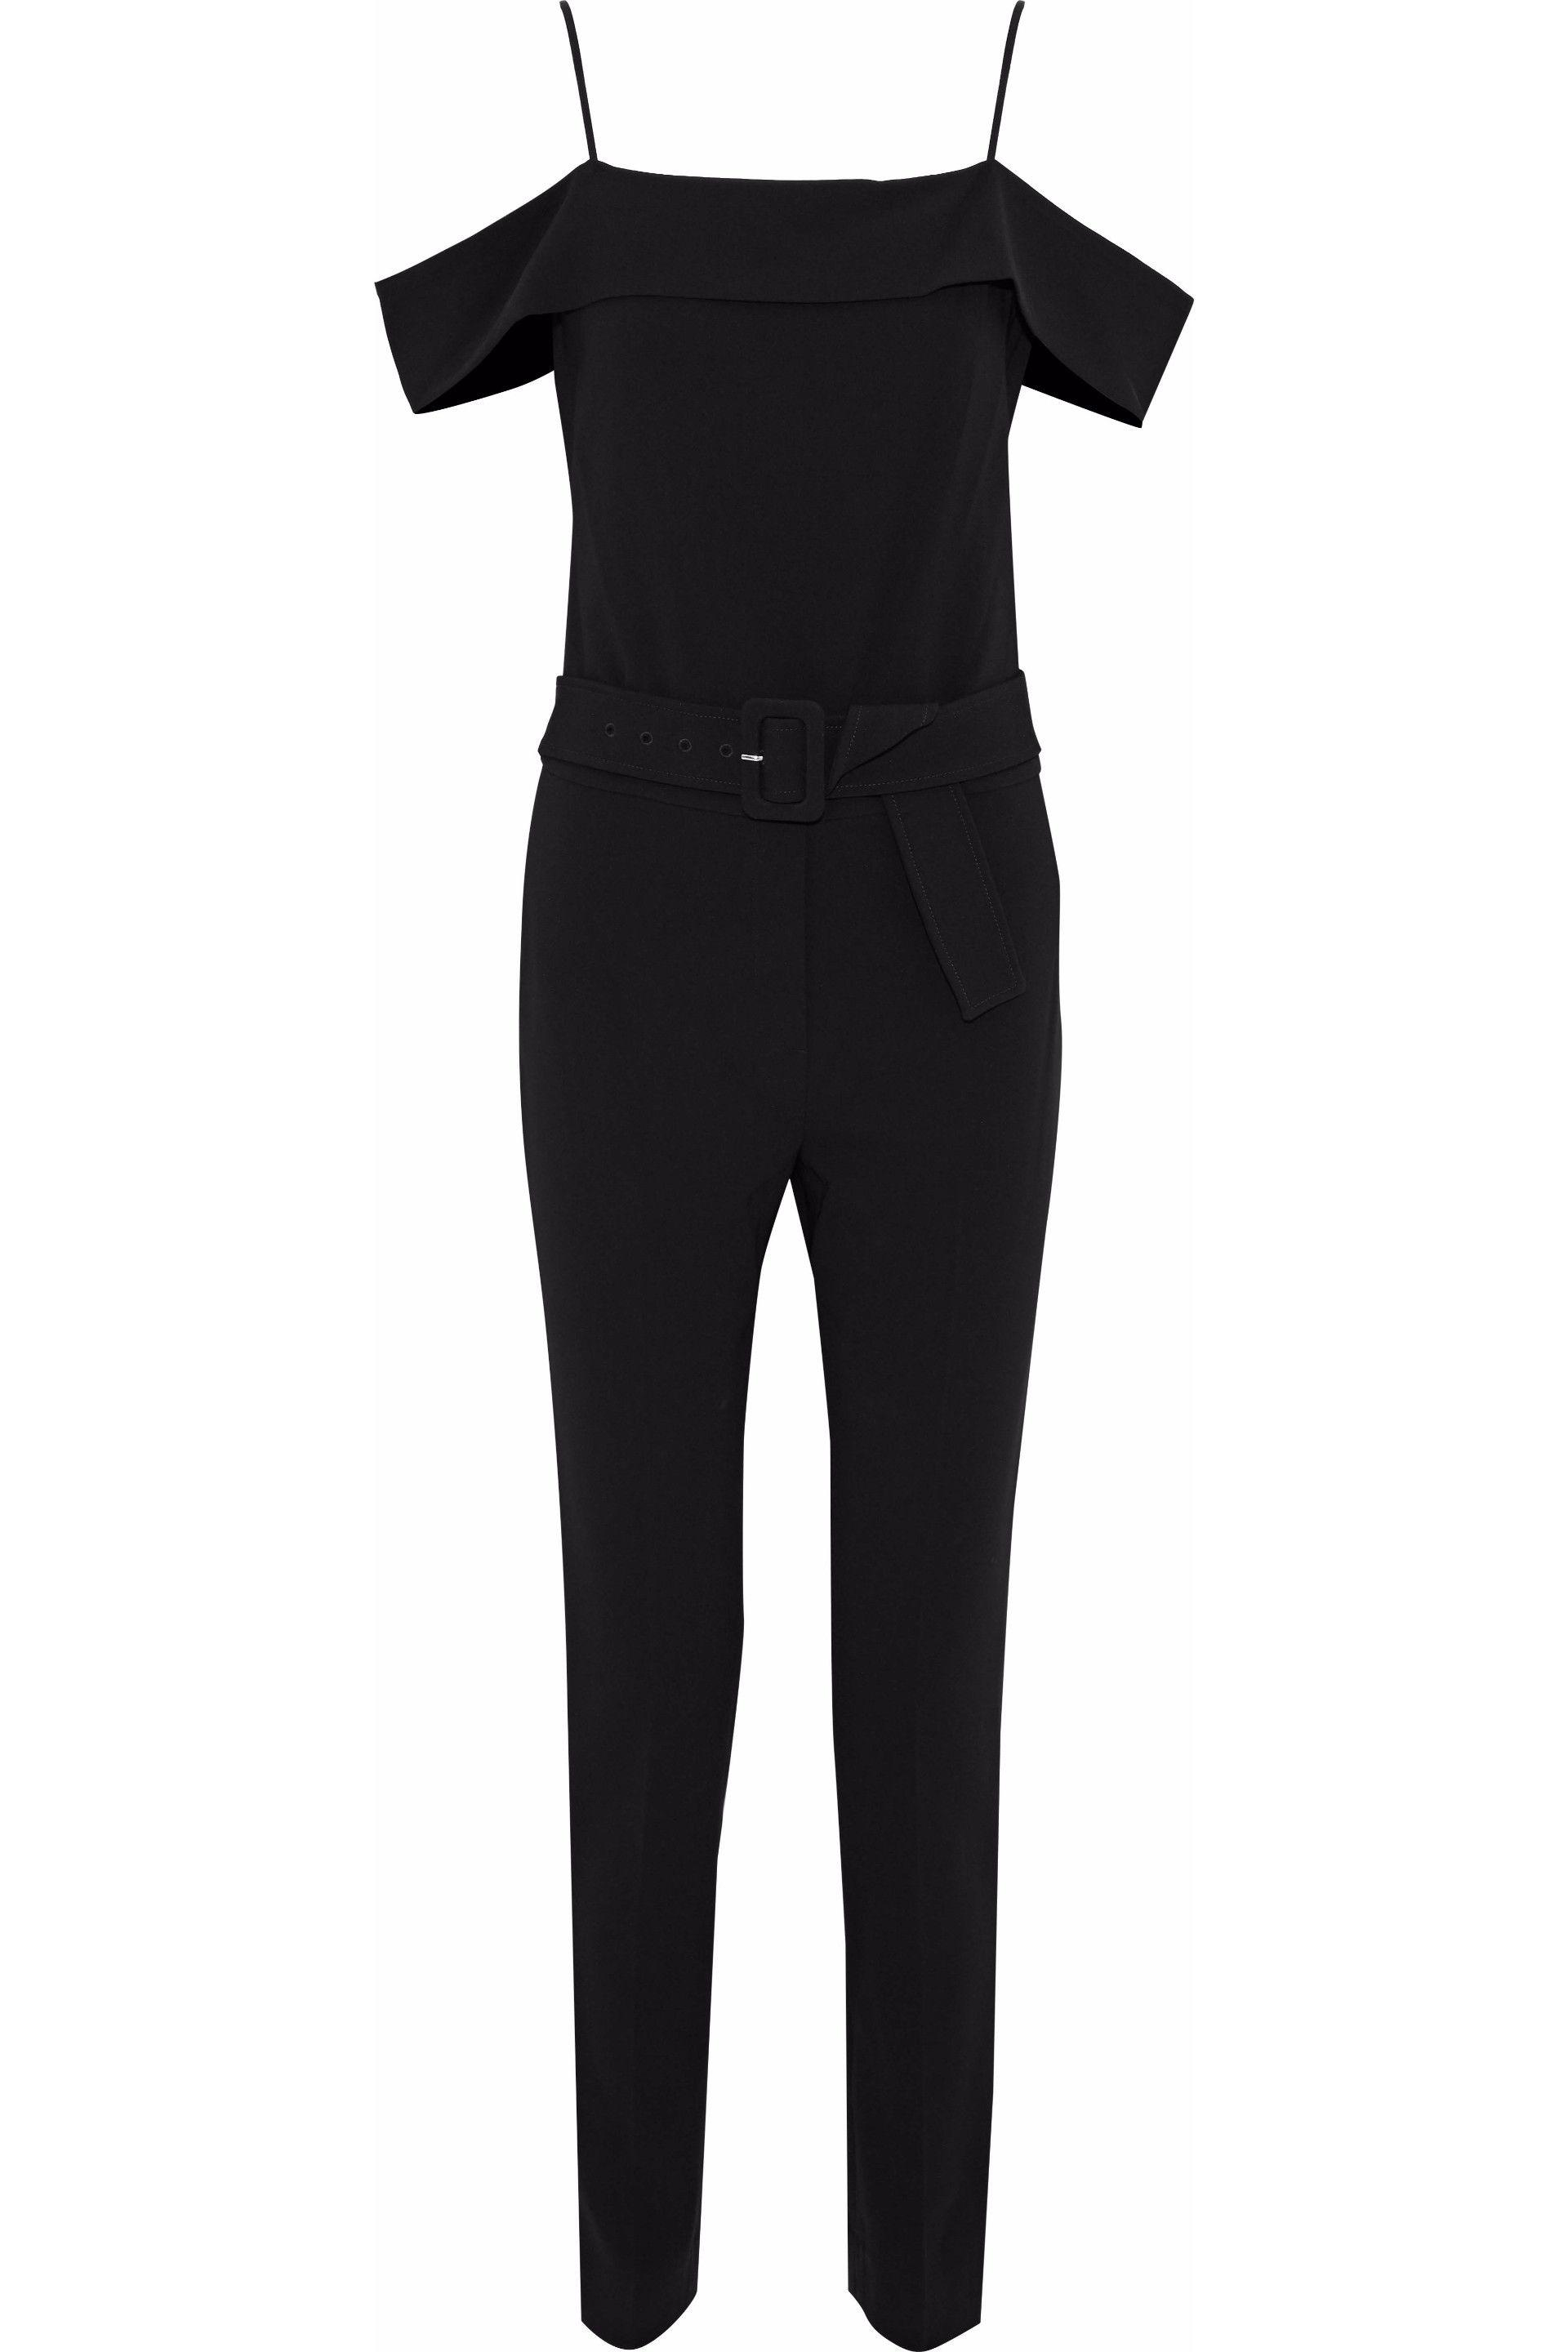 c5f8566b5f14 Lyst - Theory Cold-shoulder Belted Crepe Jumpsuit in Black